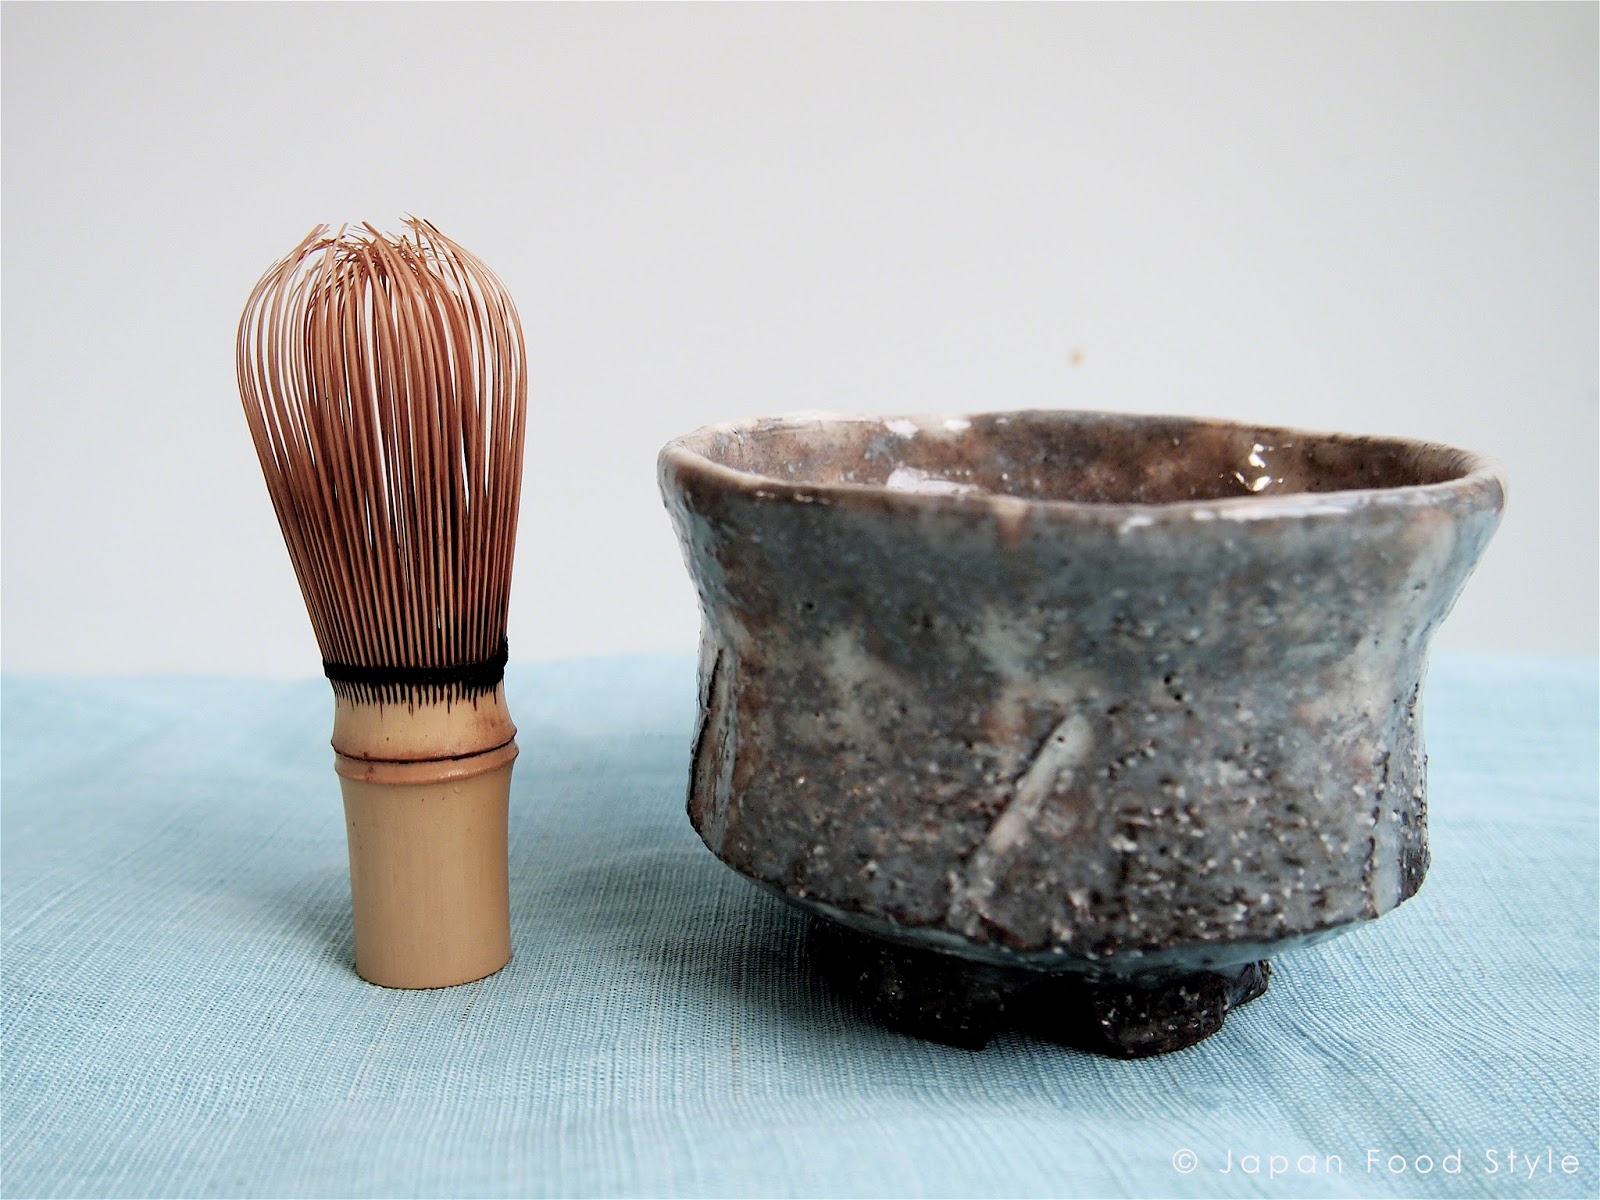 Tea whisk (chasen) and tea bowl (chawan)